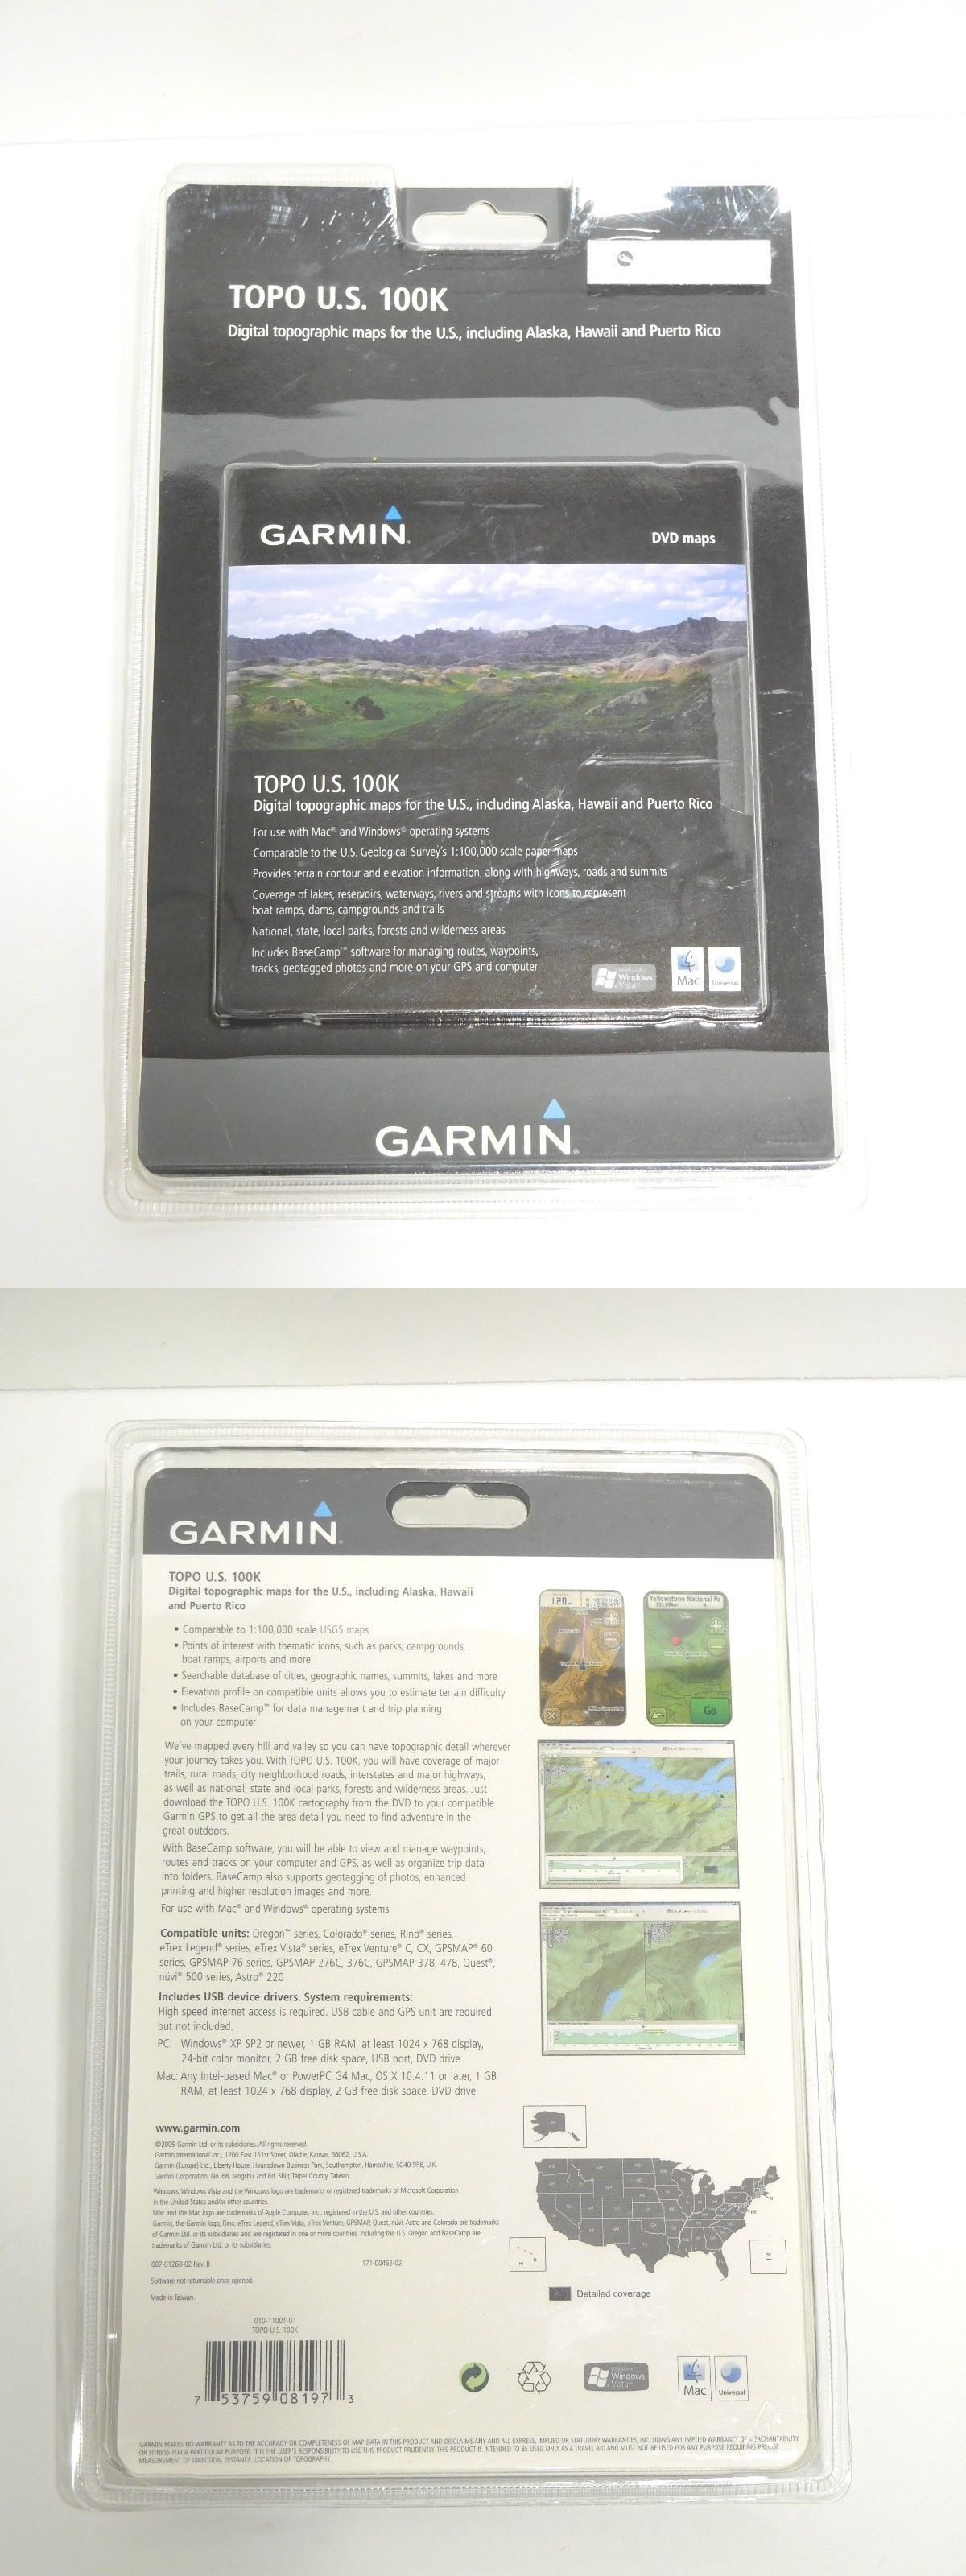 GPS Software and Maps: Garmin Us Topo 100K Digital Topographic Maps ...